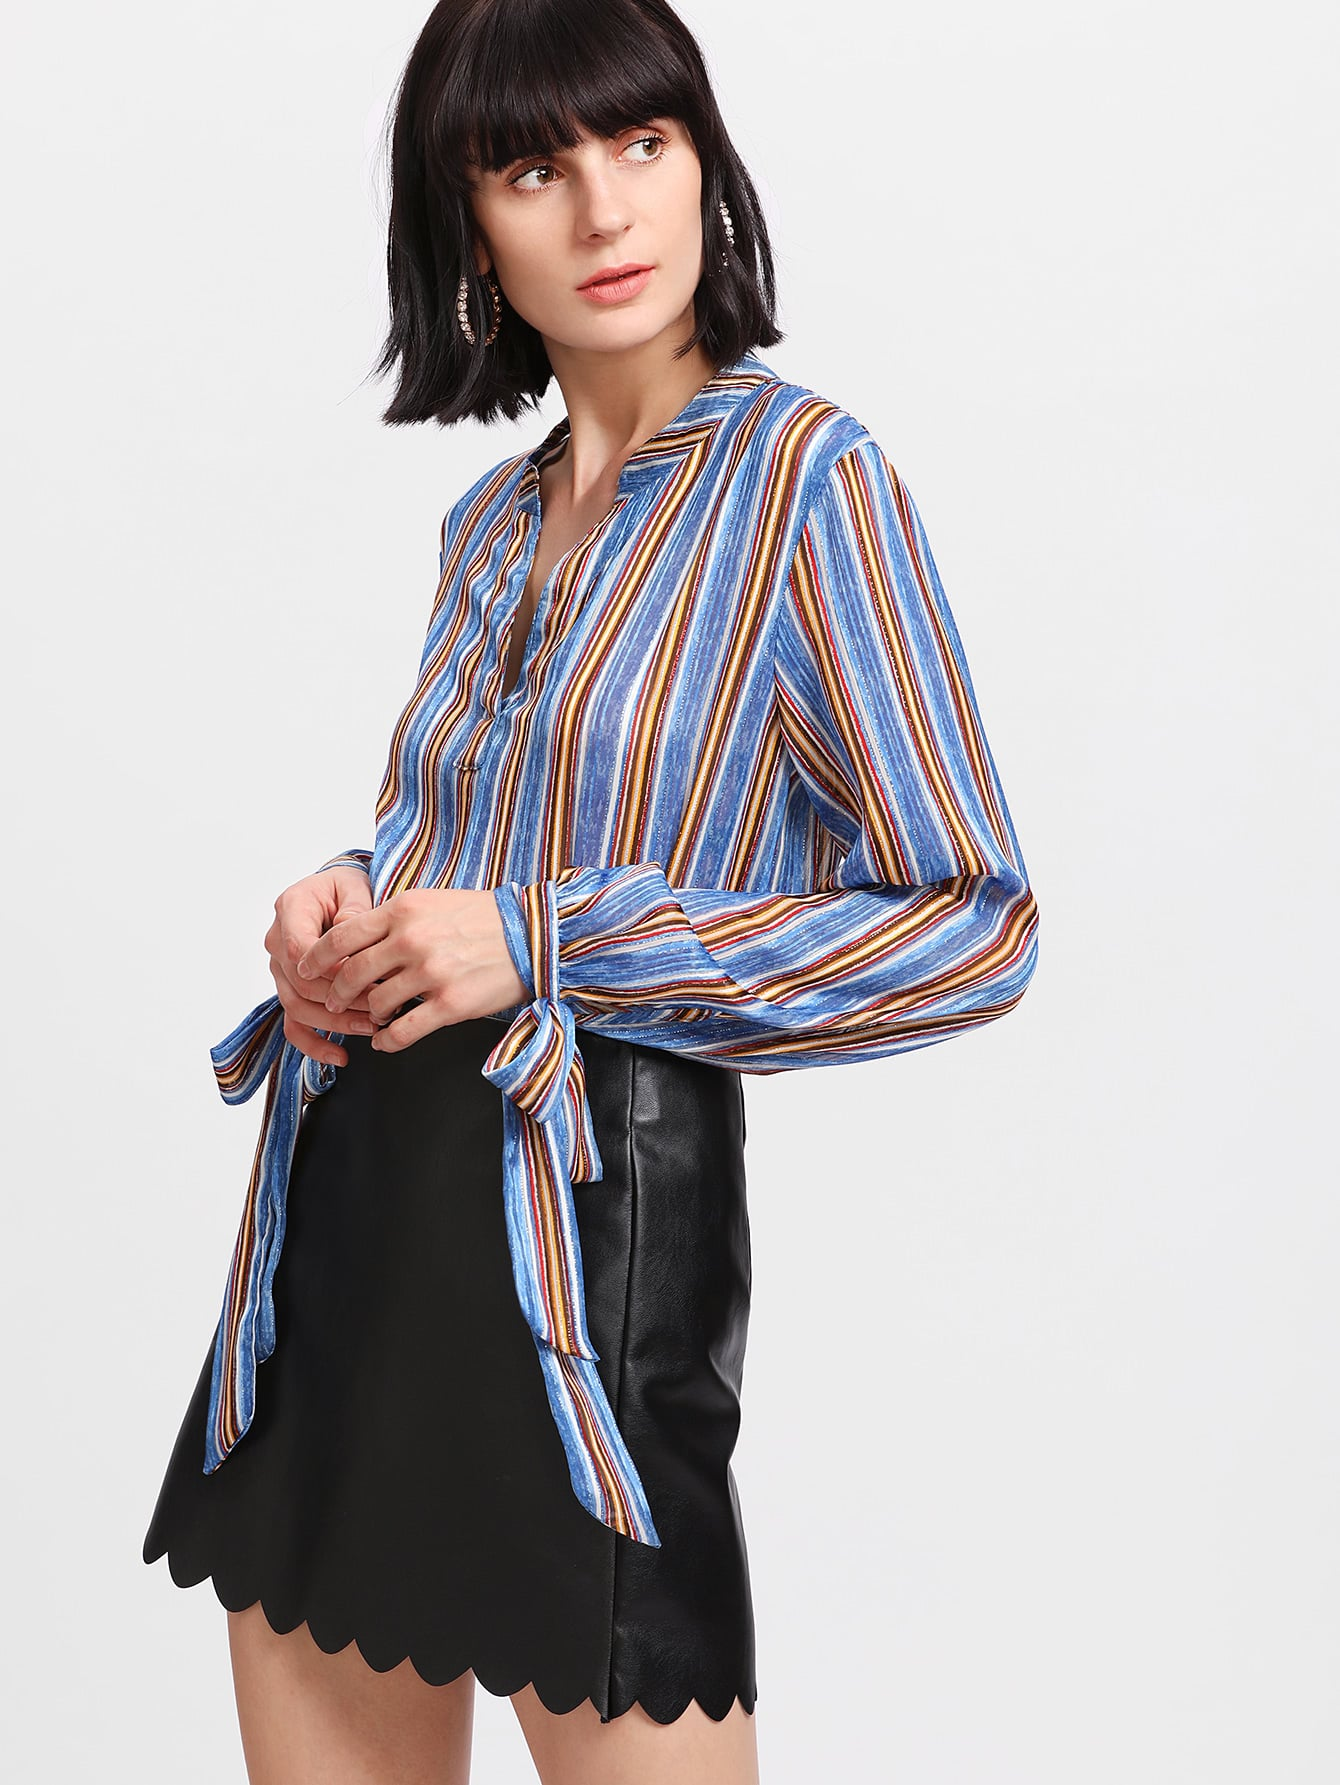 V Placket Tie Cuff Striped Top vertical striped embroidered half placket tie cuff blouse